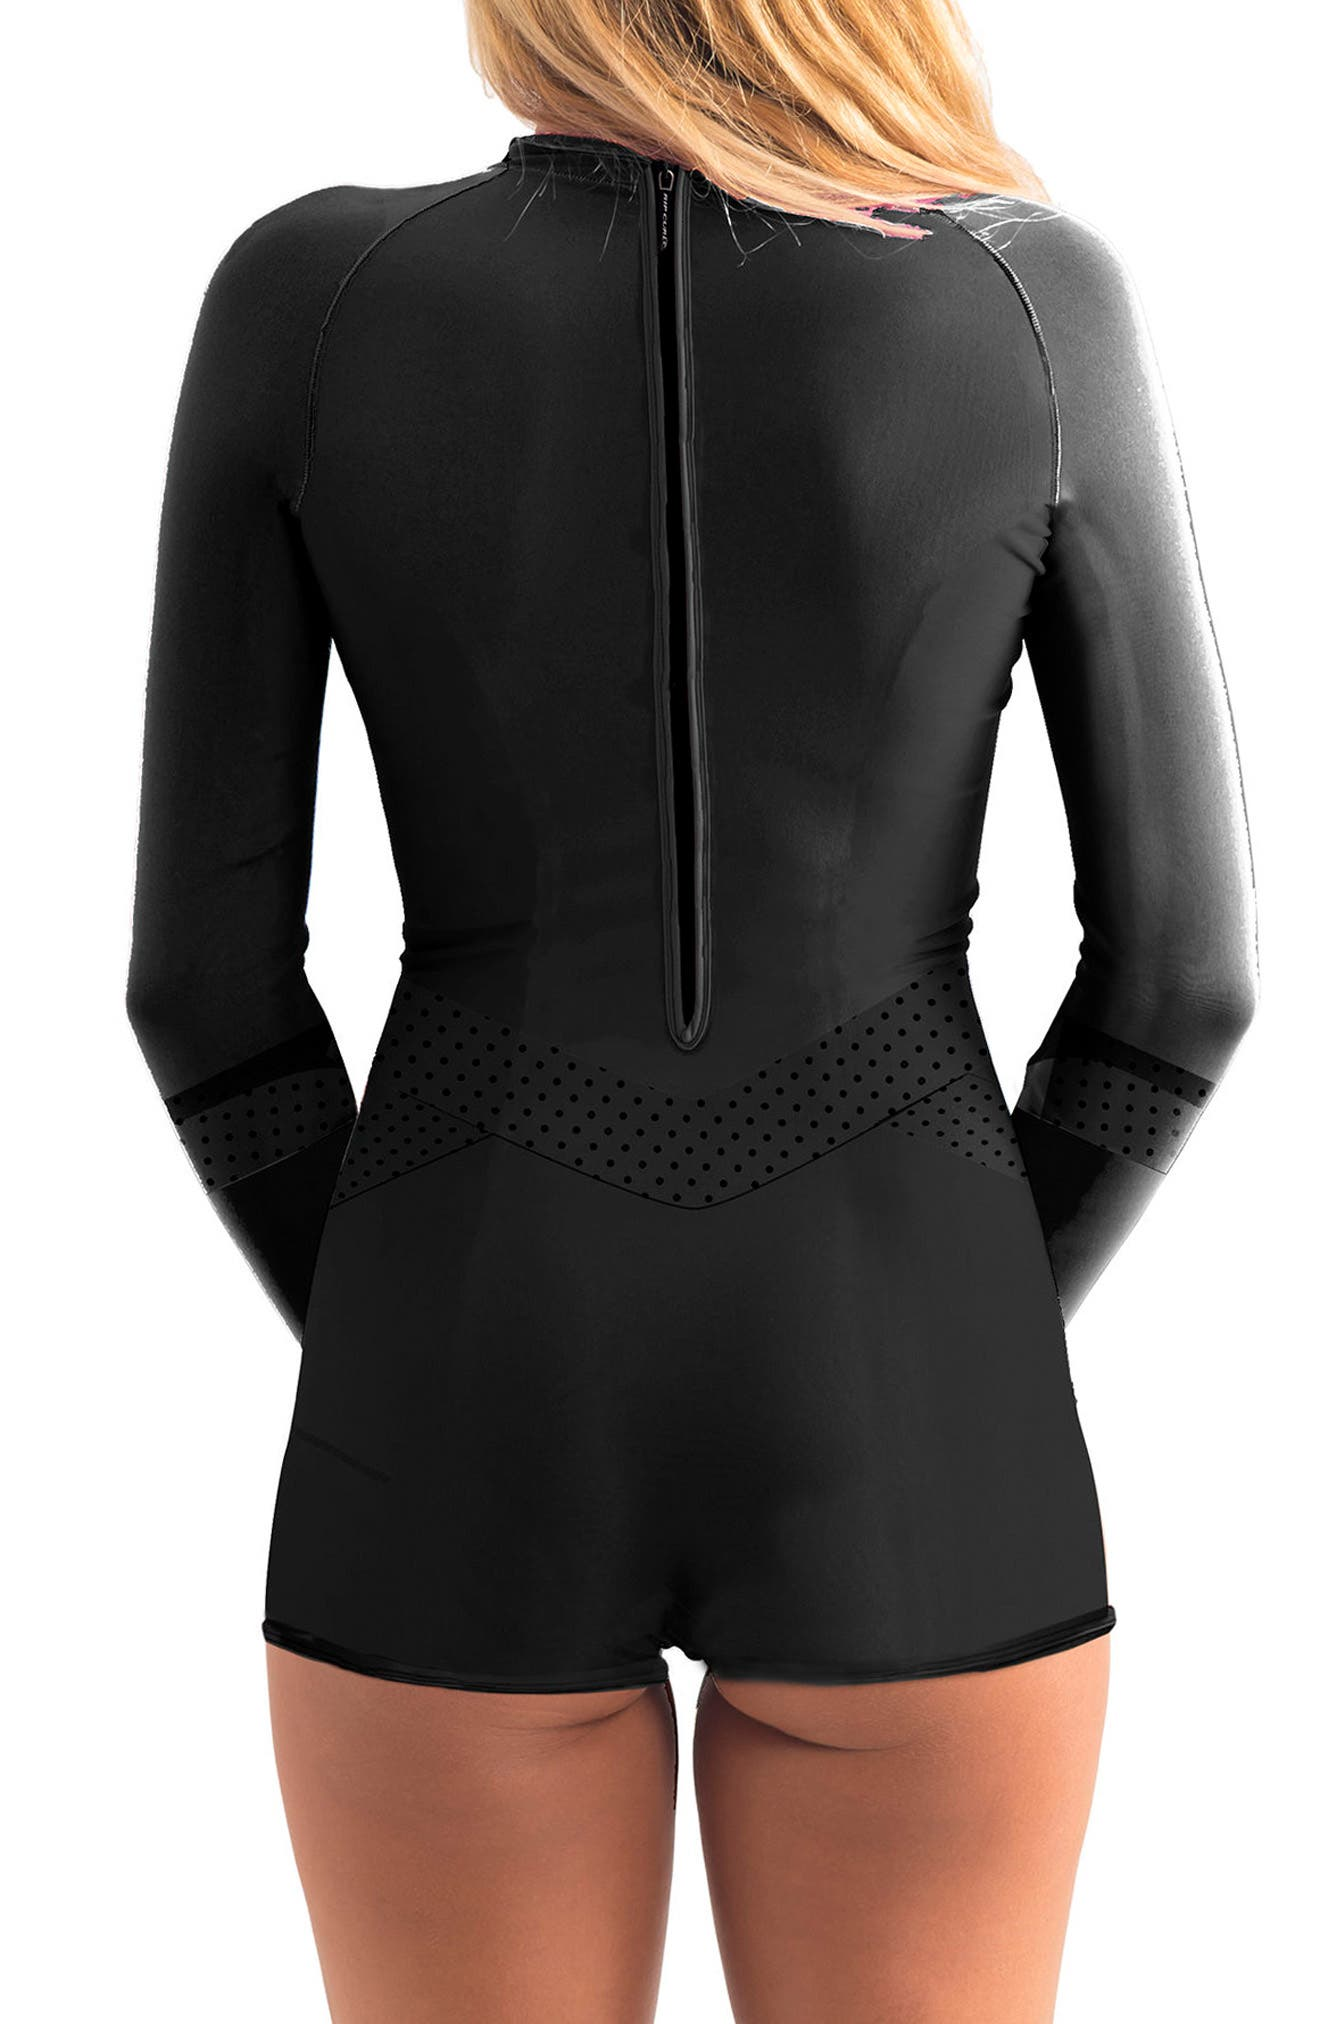 G-Bomb Madison Boyleg Springsuit,                             Alternate thumbnail 2, color,                             Black